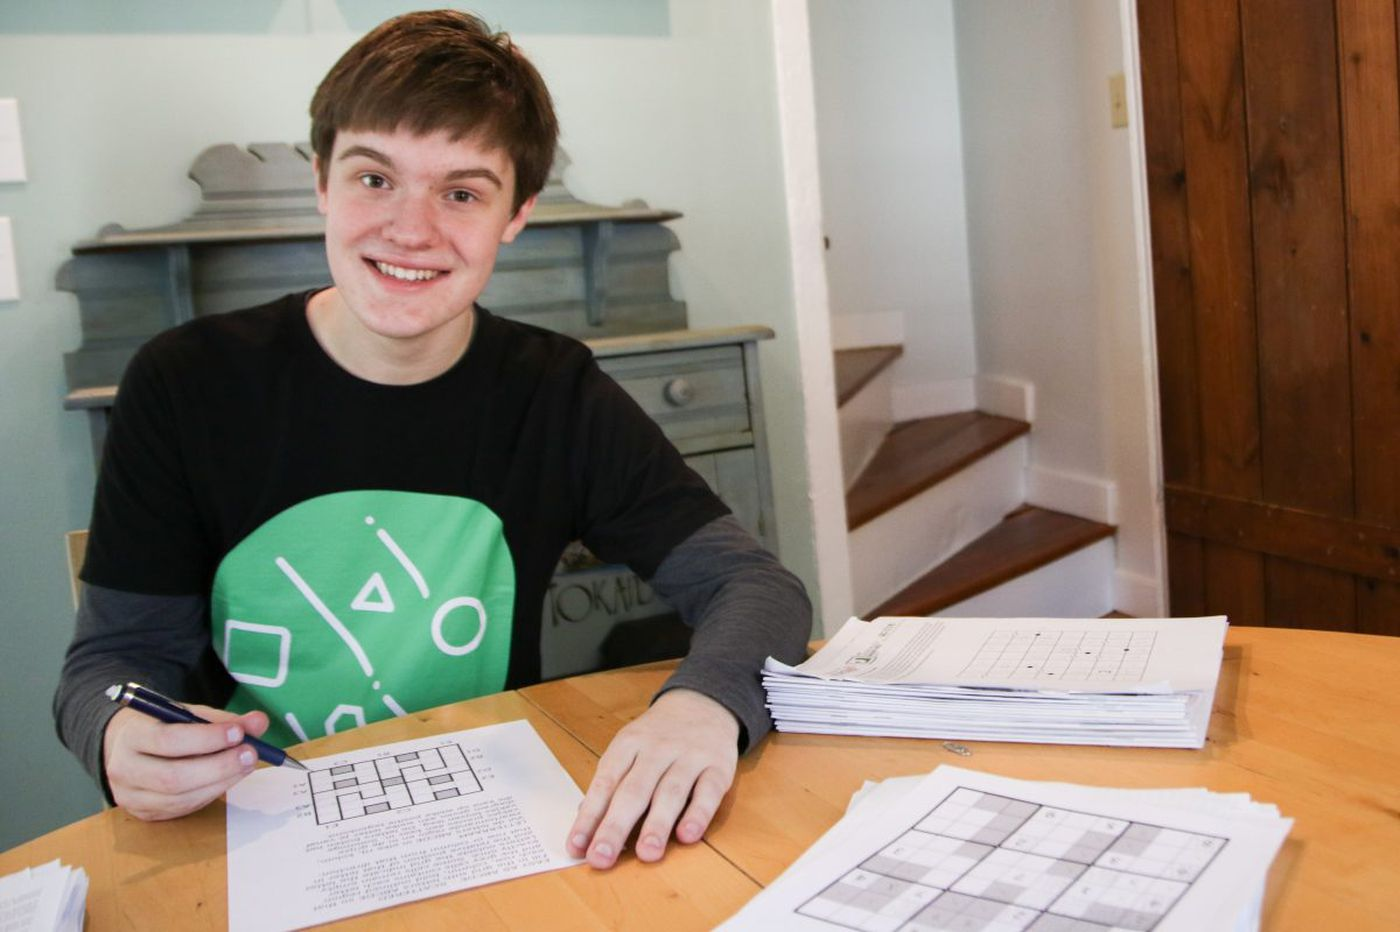 Doylestown teen is a world-class puzzle solver